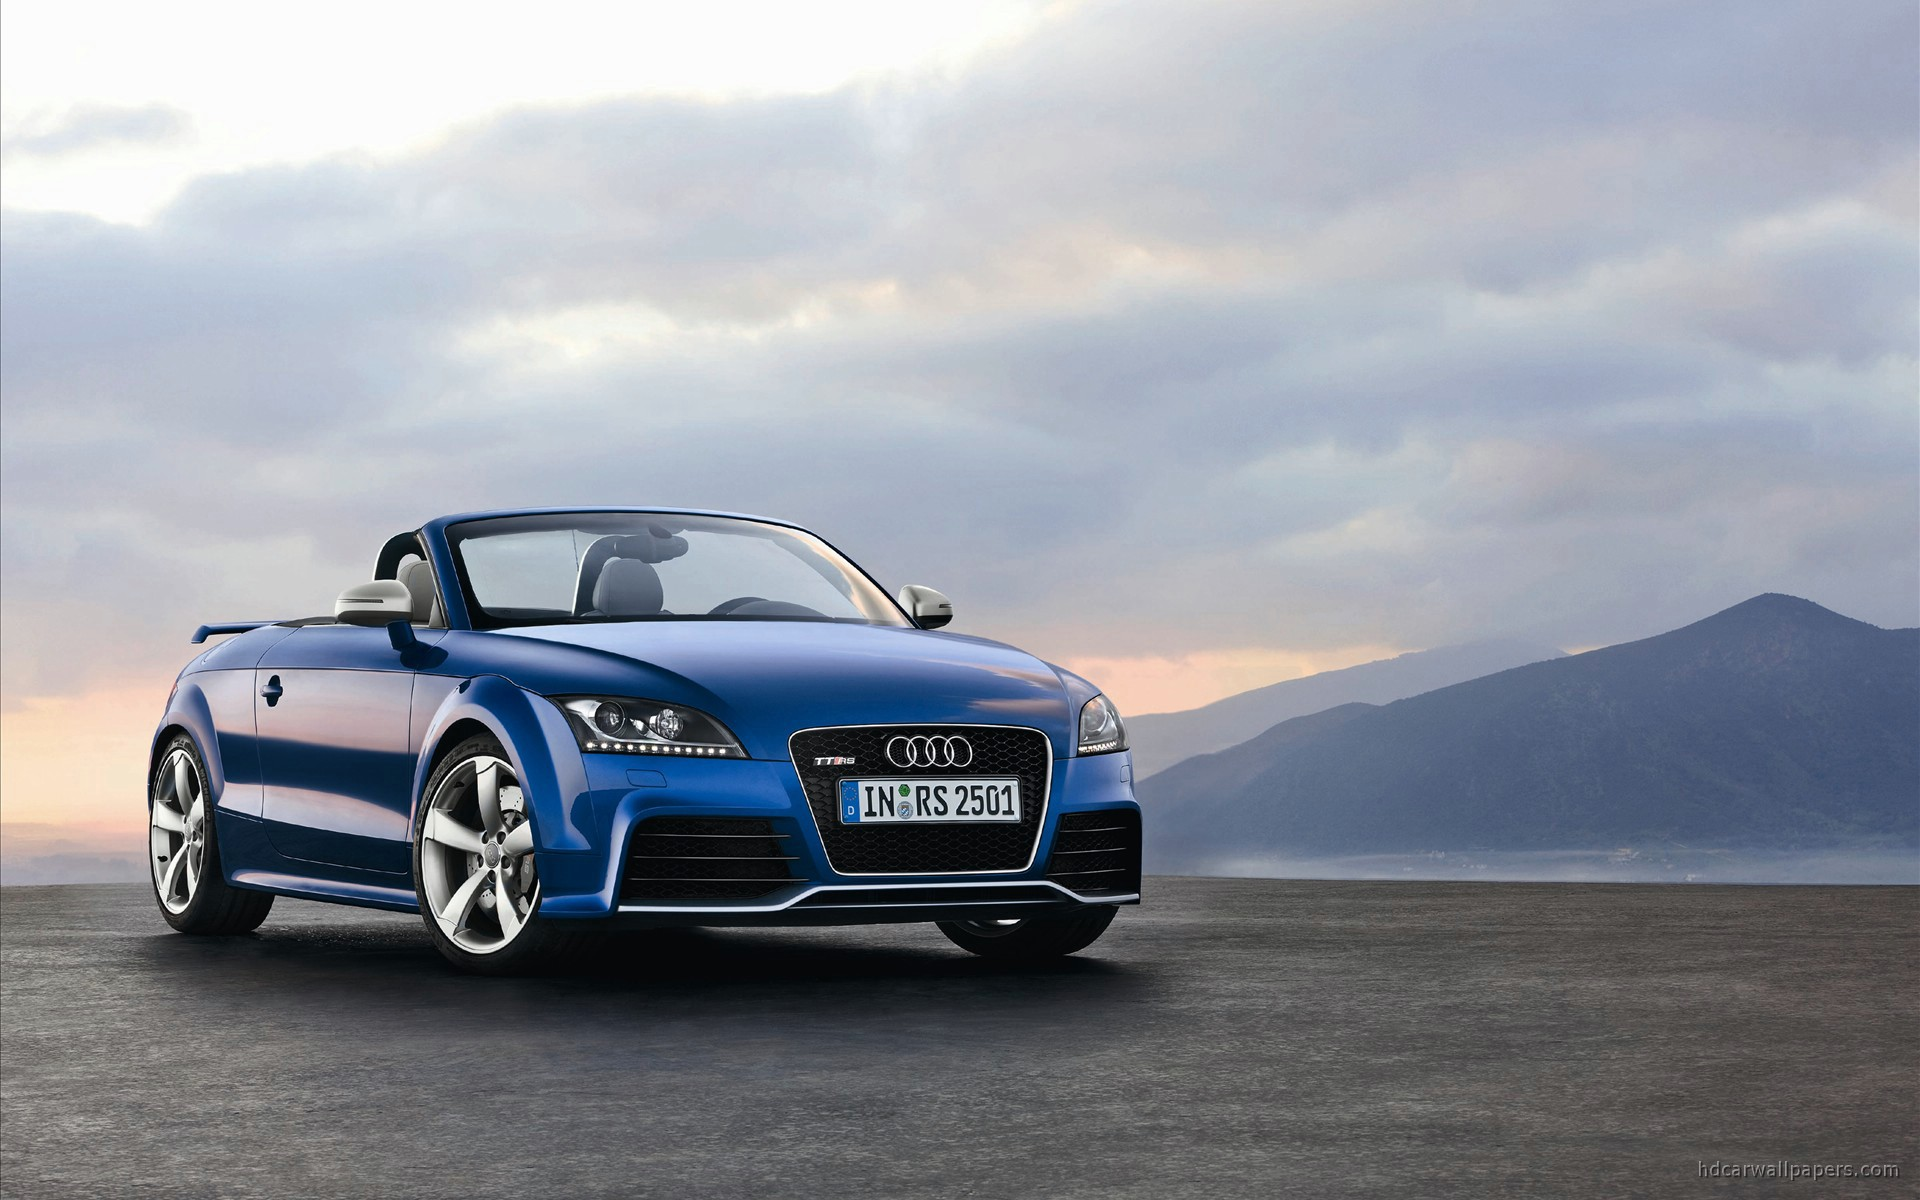 2010 Audi TT RS Roadster 4 Wallpaper | HD Car Wallpapers